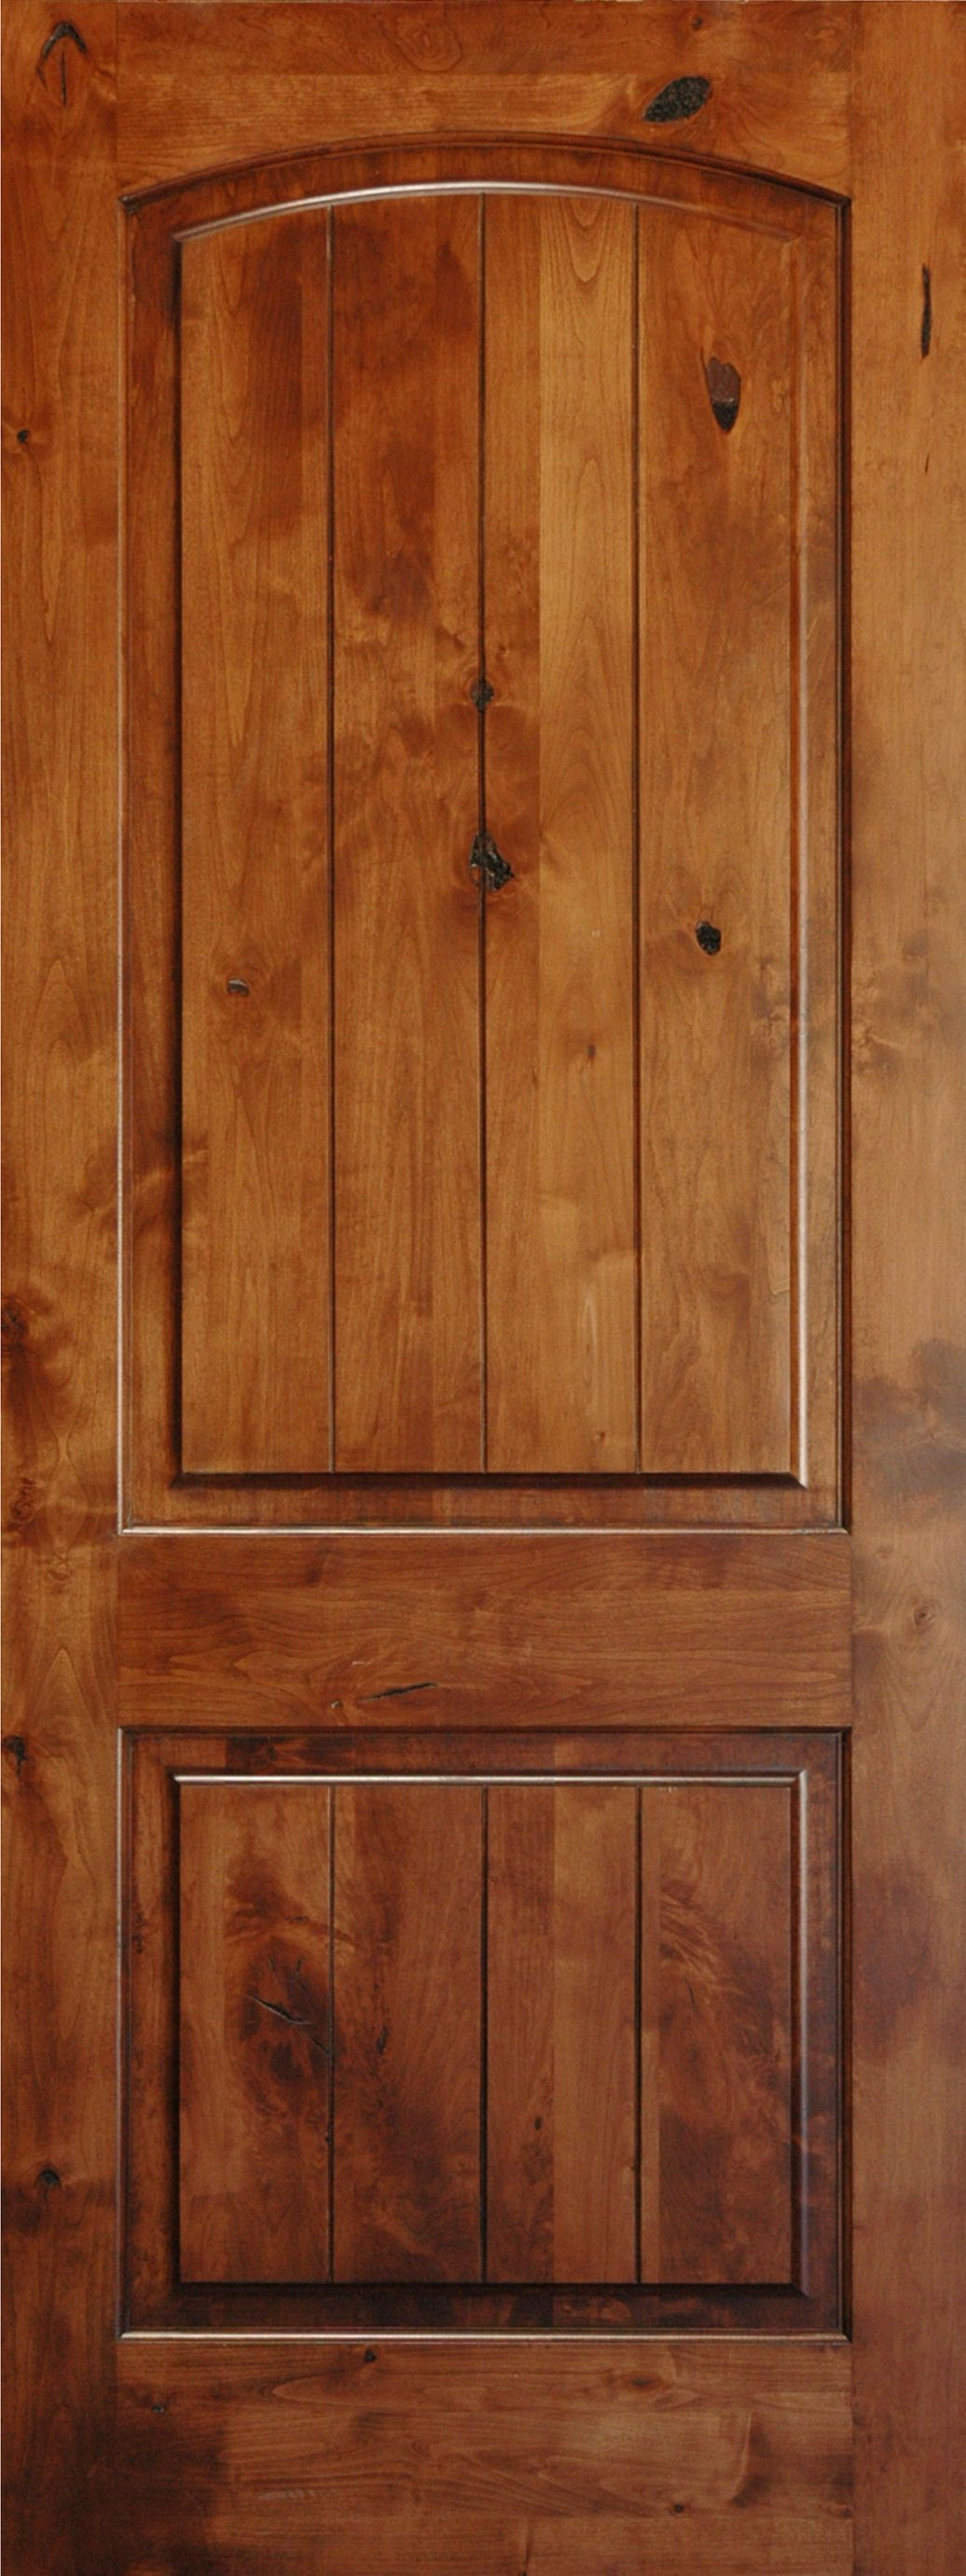 Panel doors pine doors knotty alder and arch for Interior design styles wood